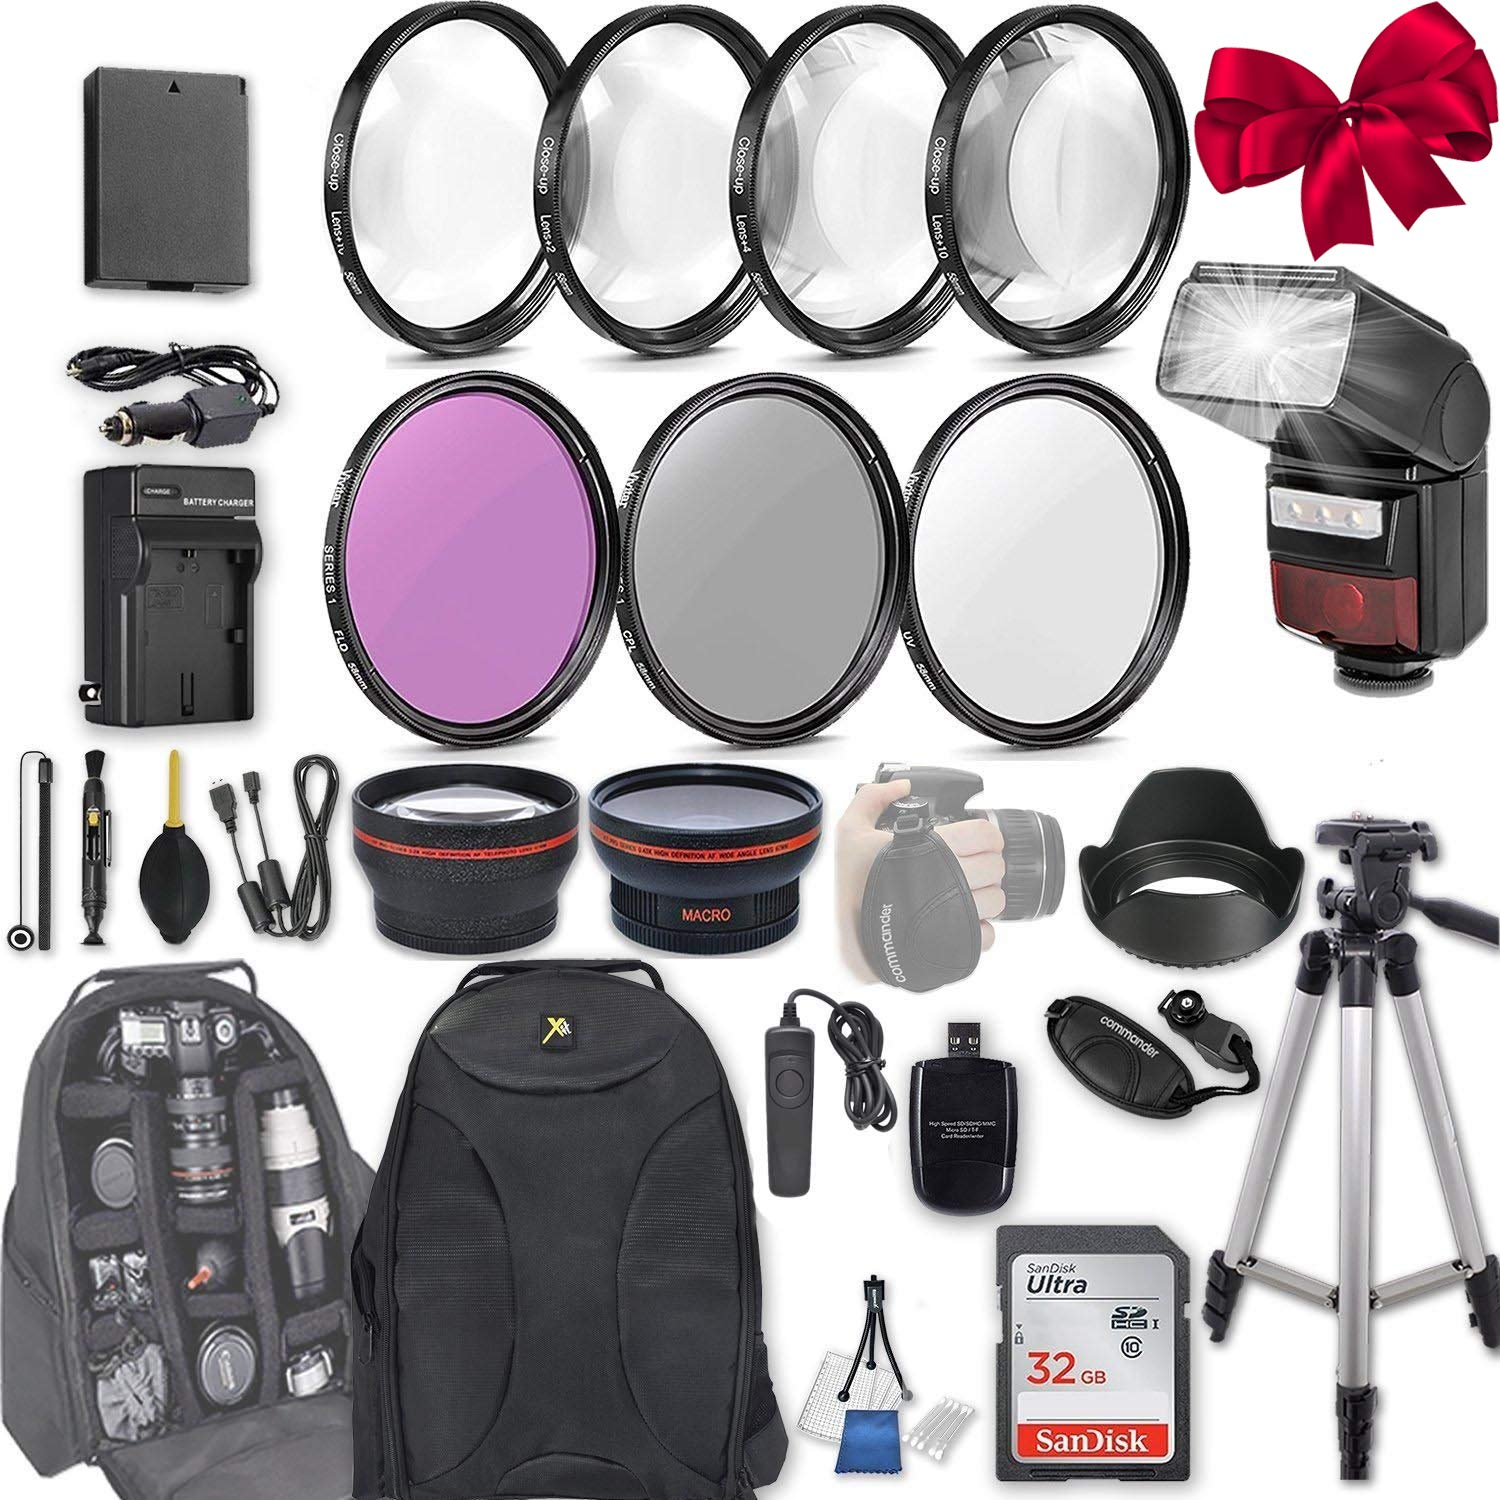 58mm 28 Pc Accessory Kit for Canon EOS Rebel T6, T5, T3, 1300D, 1200D, 1100D DSLRs with 0.43x Wide Angle Lens, 2.2x Telephoto Lens, LED-Flash, 32GB SD, Filter & Macro Kits, Backpack Case, and More by Canon